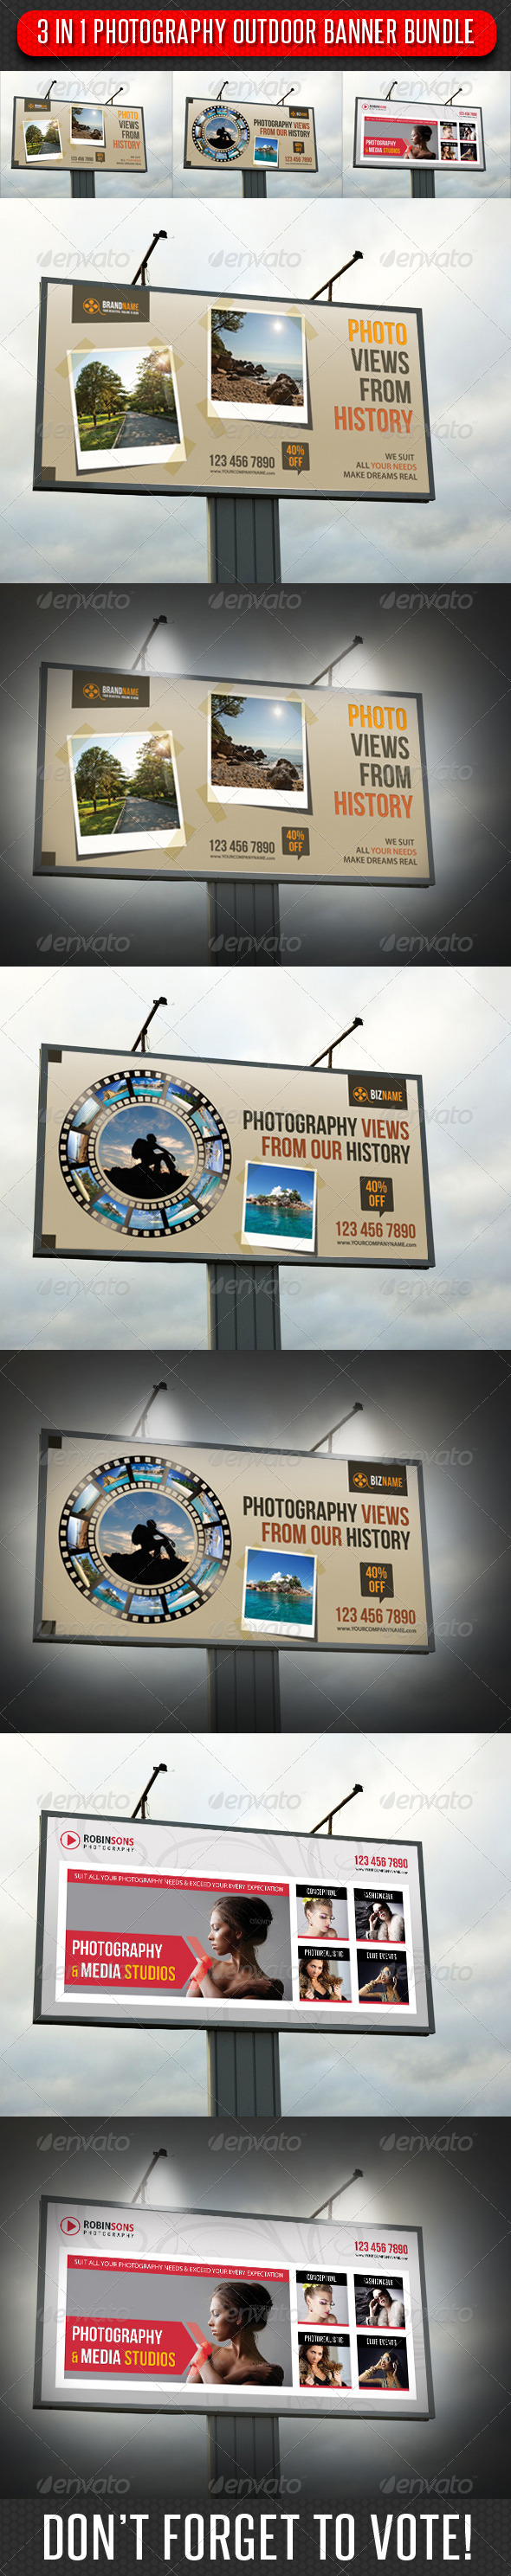 GraphicRiver 3 in 1 Photography Outdoor Banner Bundle 01 6761462